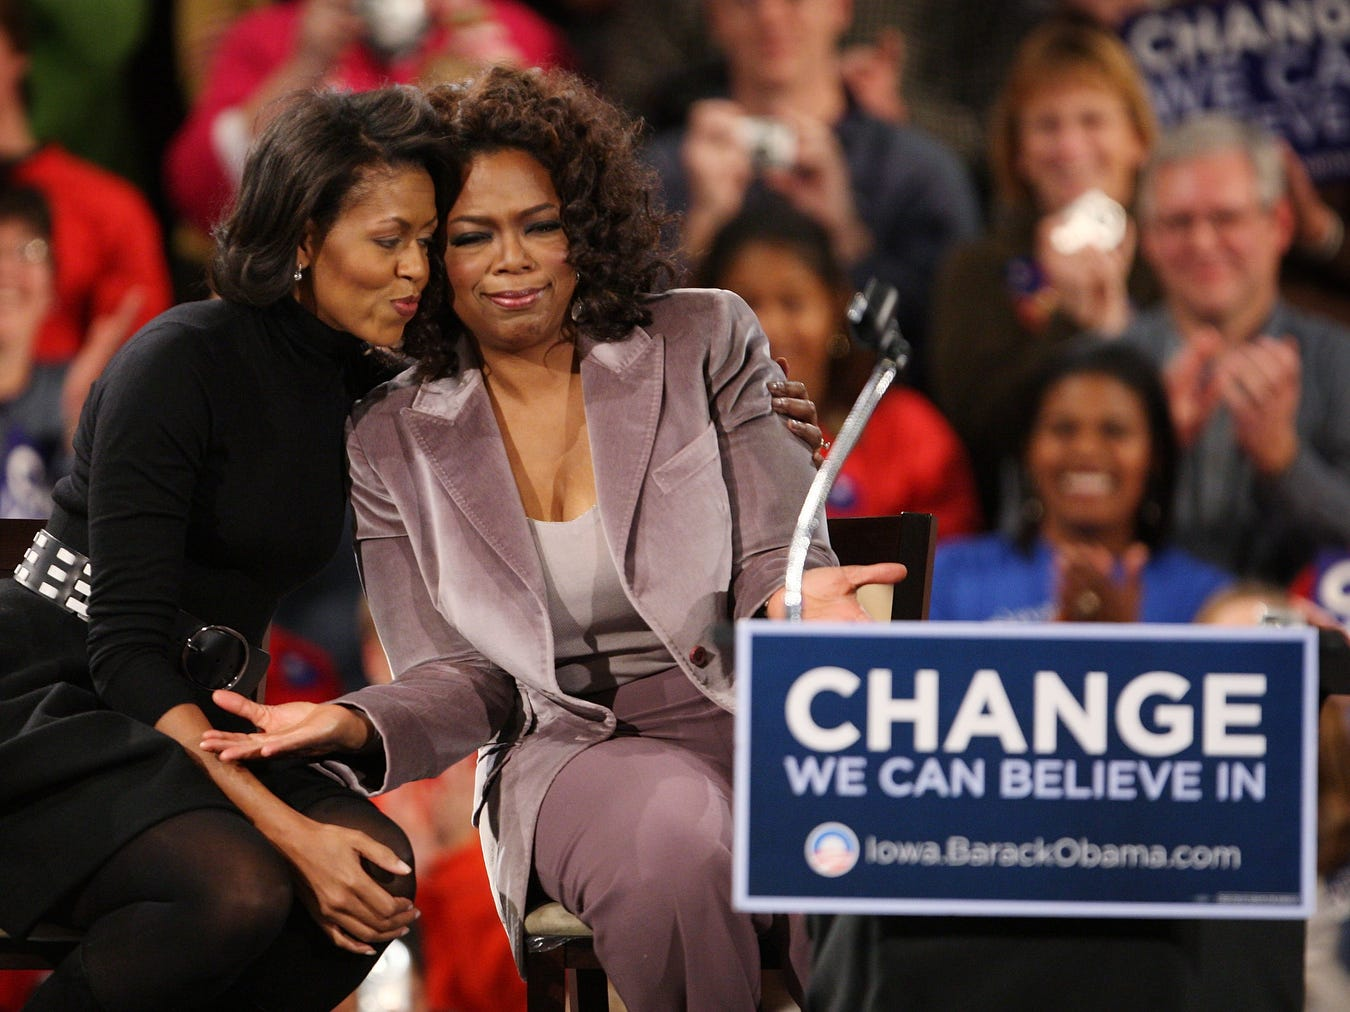 DES MOINES, IA - DECEMBER 8:  Talk show host Oprah Winfrey (L) and Michelle Obama embrace at a rally for her husband Democratic presidential hopeful Sen. Barack Obama (D-IL)  December 8, 2007 in Des Moines, Iowa. Obama and Winfrey are scheduled to make two stops in Iowa before heading off to campaign events in South Carolina and New Hampshire tomorrow.  (Photo by Scott Olson/Getty Images)